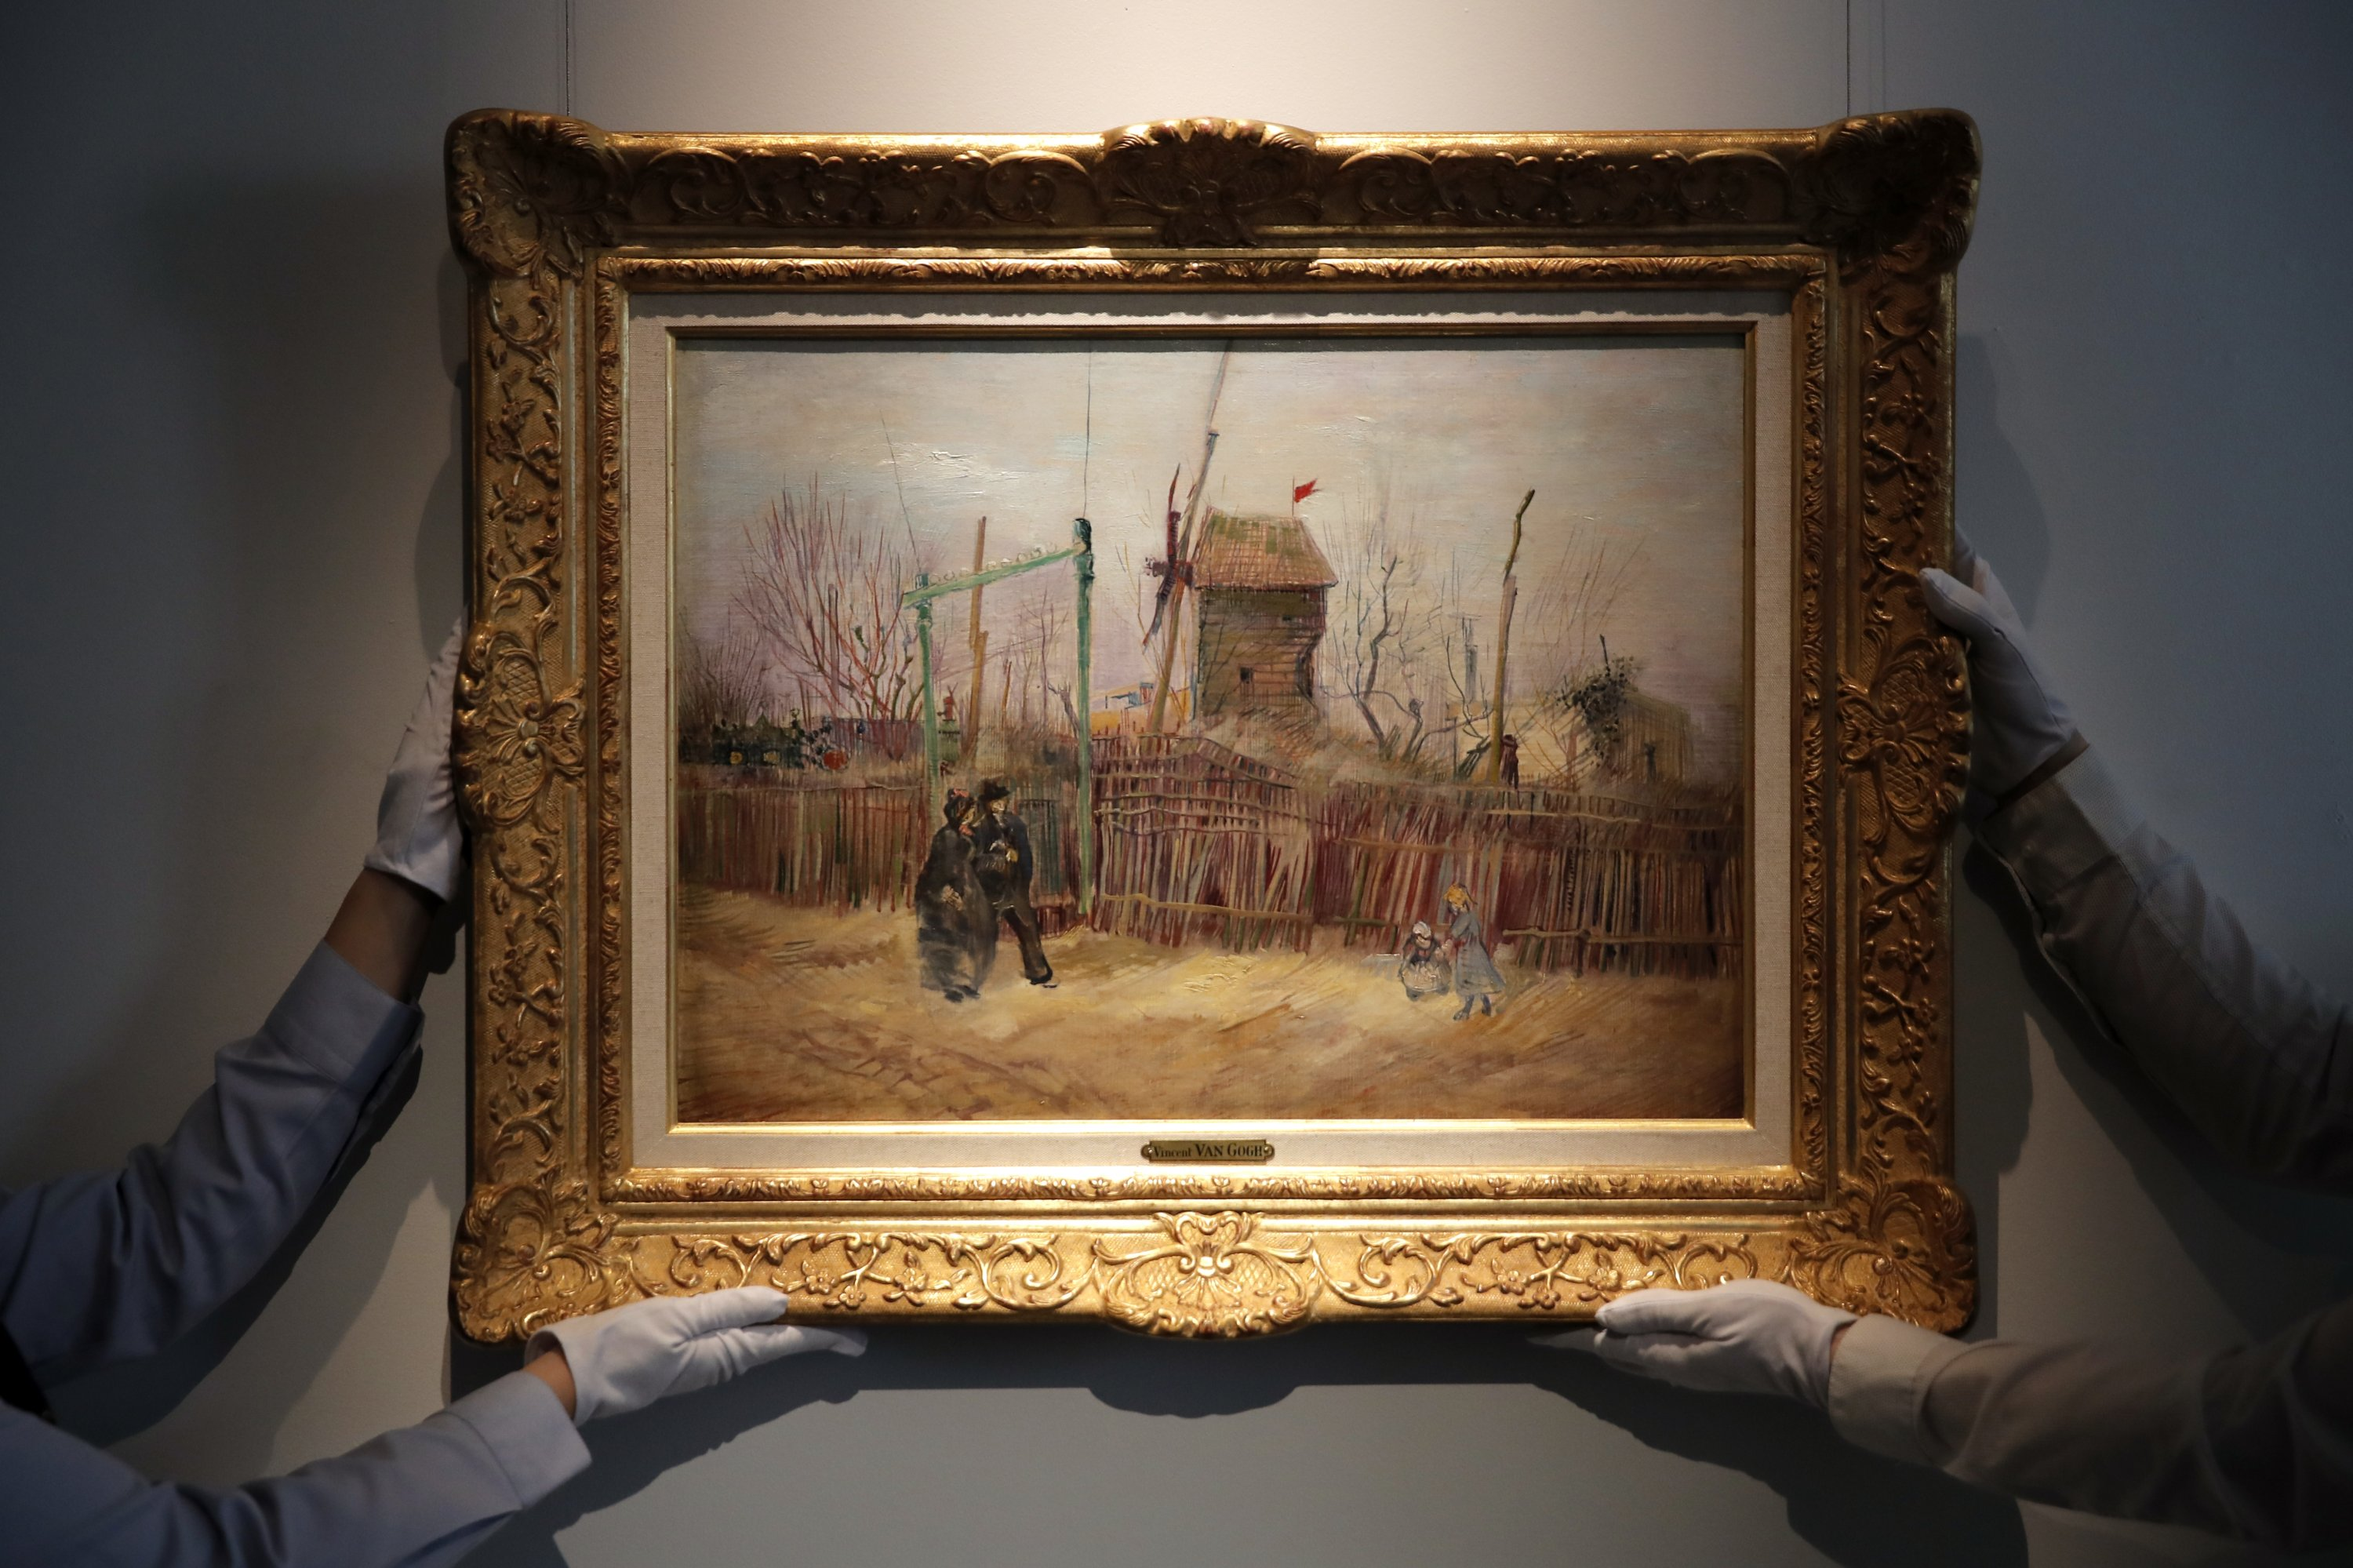 Sotheby's personnel display the 'Street scene in Montmartre' painting by Dutch master Vincent Van Gogh at Sotheby's auction house in Paris, France, Feb. 25, 2021. (AP Photo)